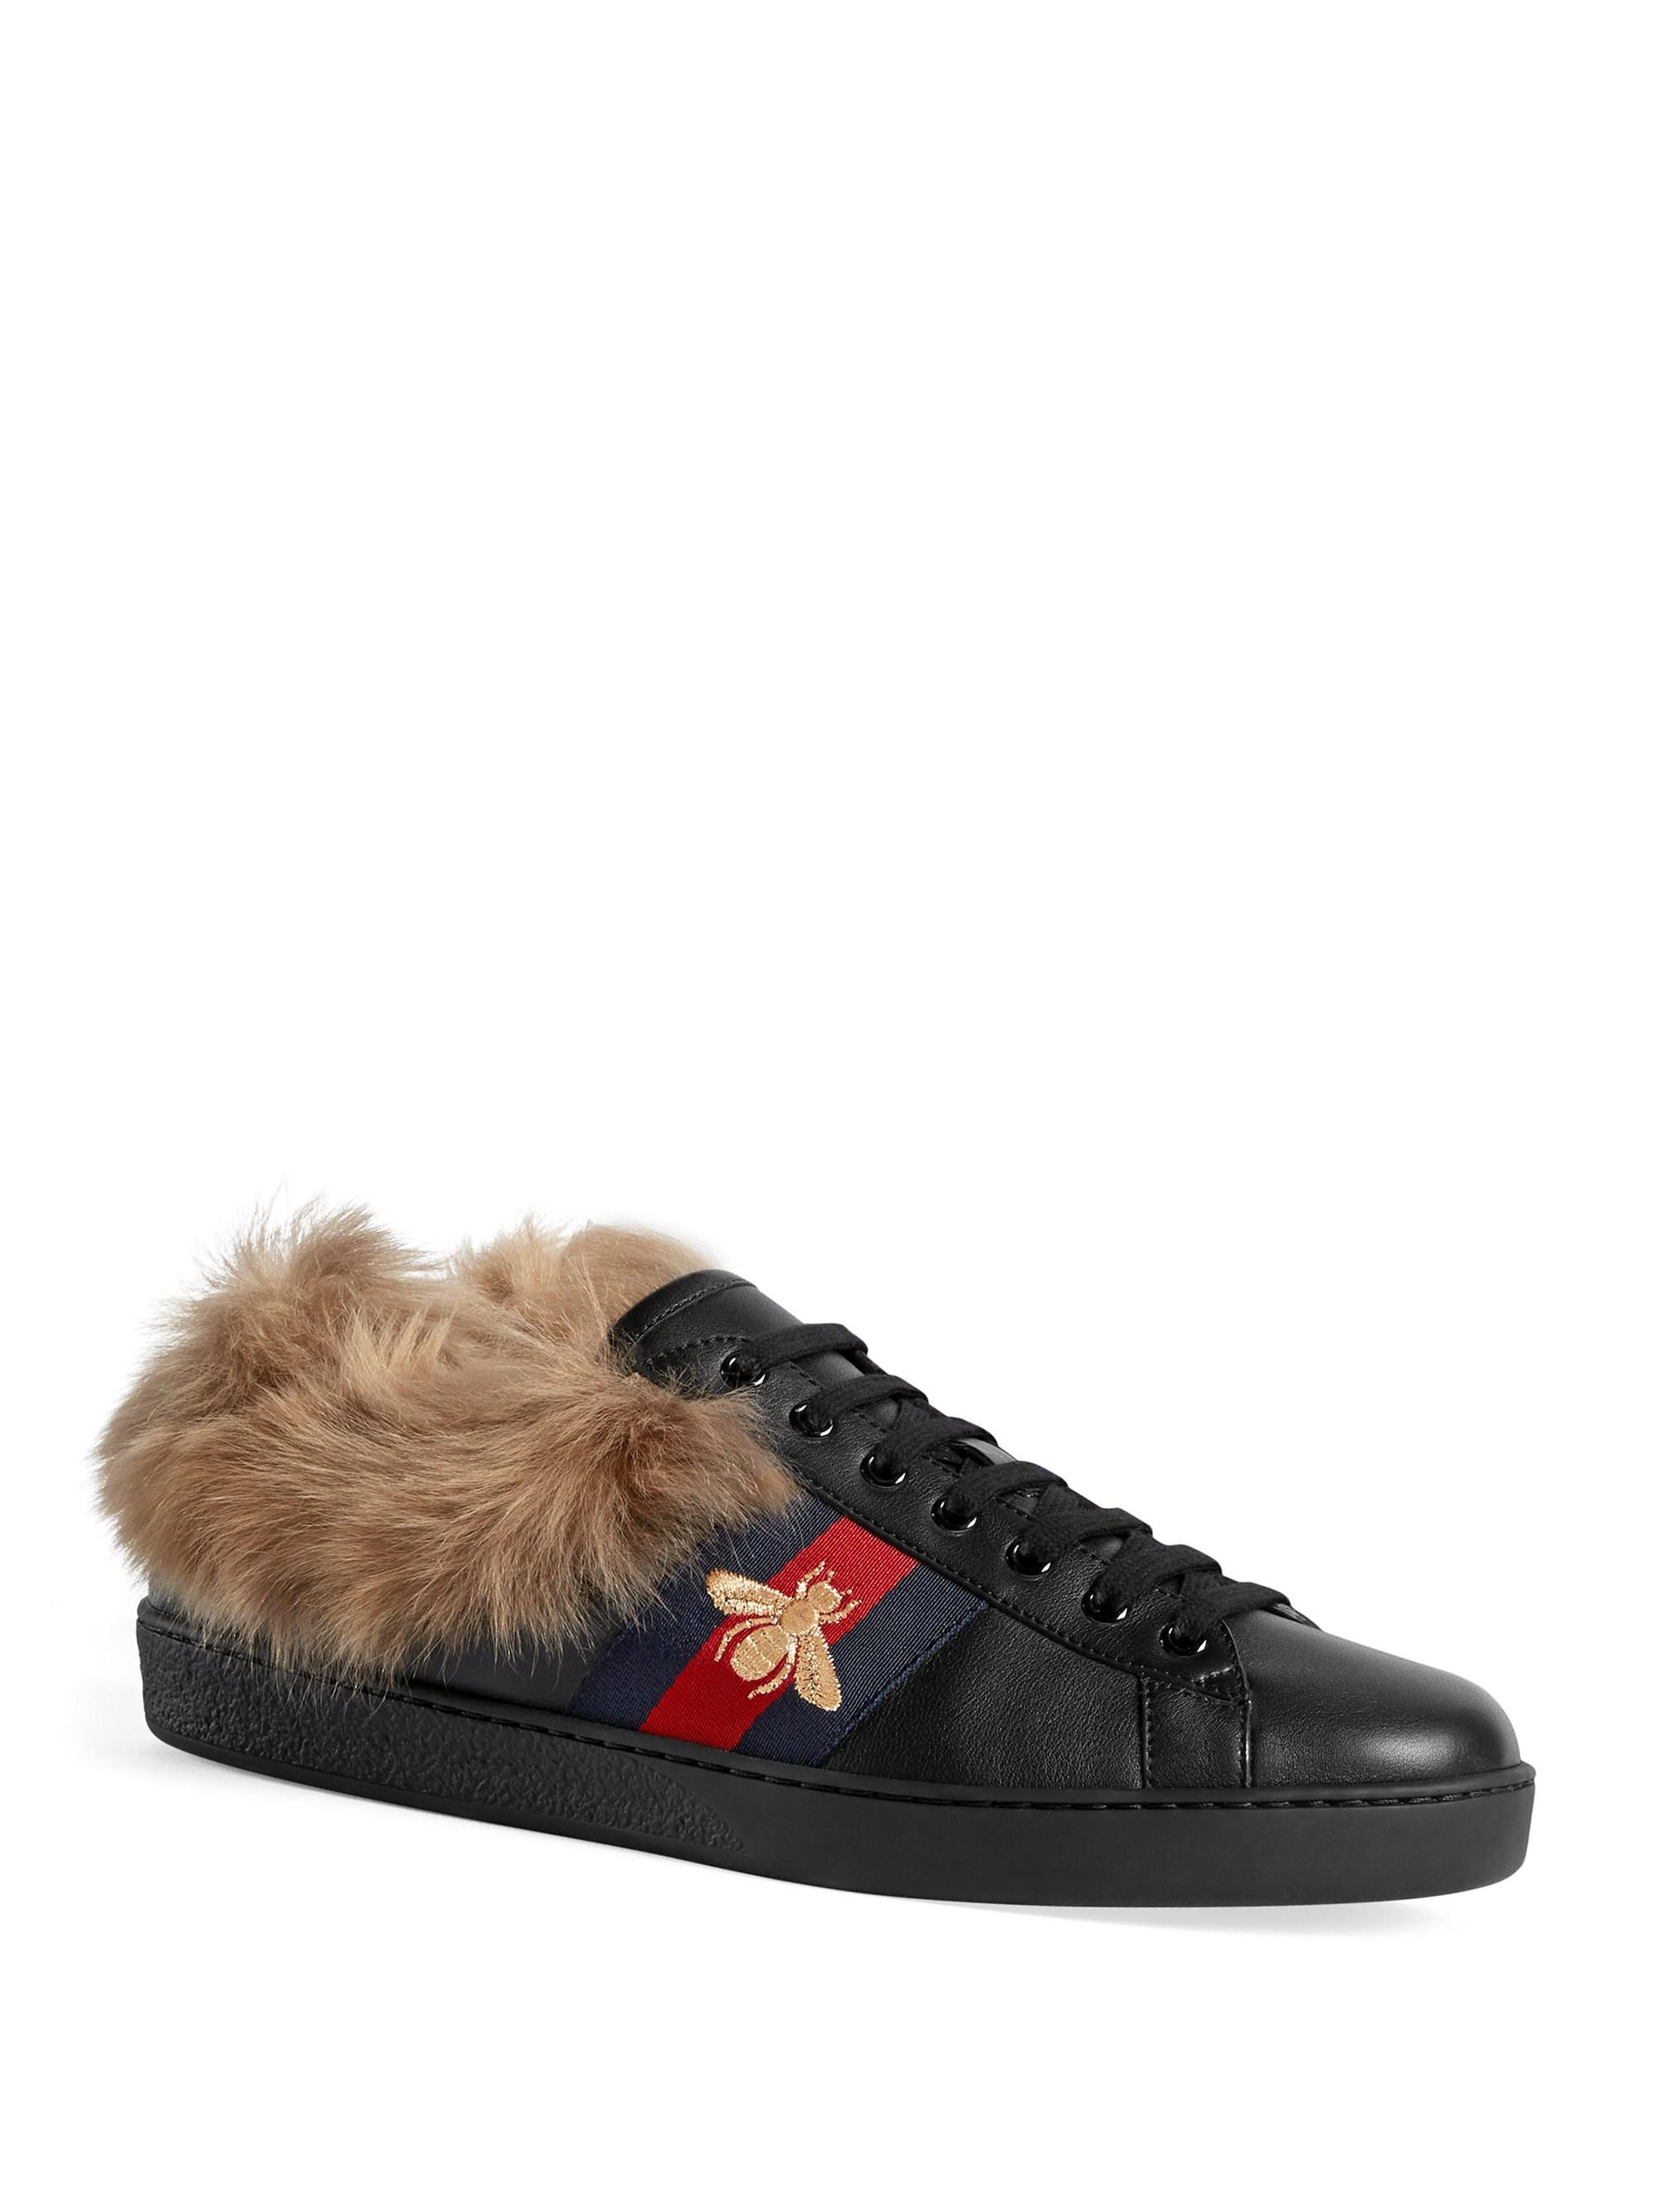 abdd3d95097f Gucci Men s New Ace Sneaker With Fur - White in Black for Men - Lyst